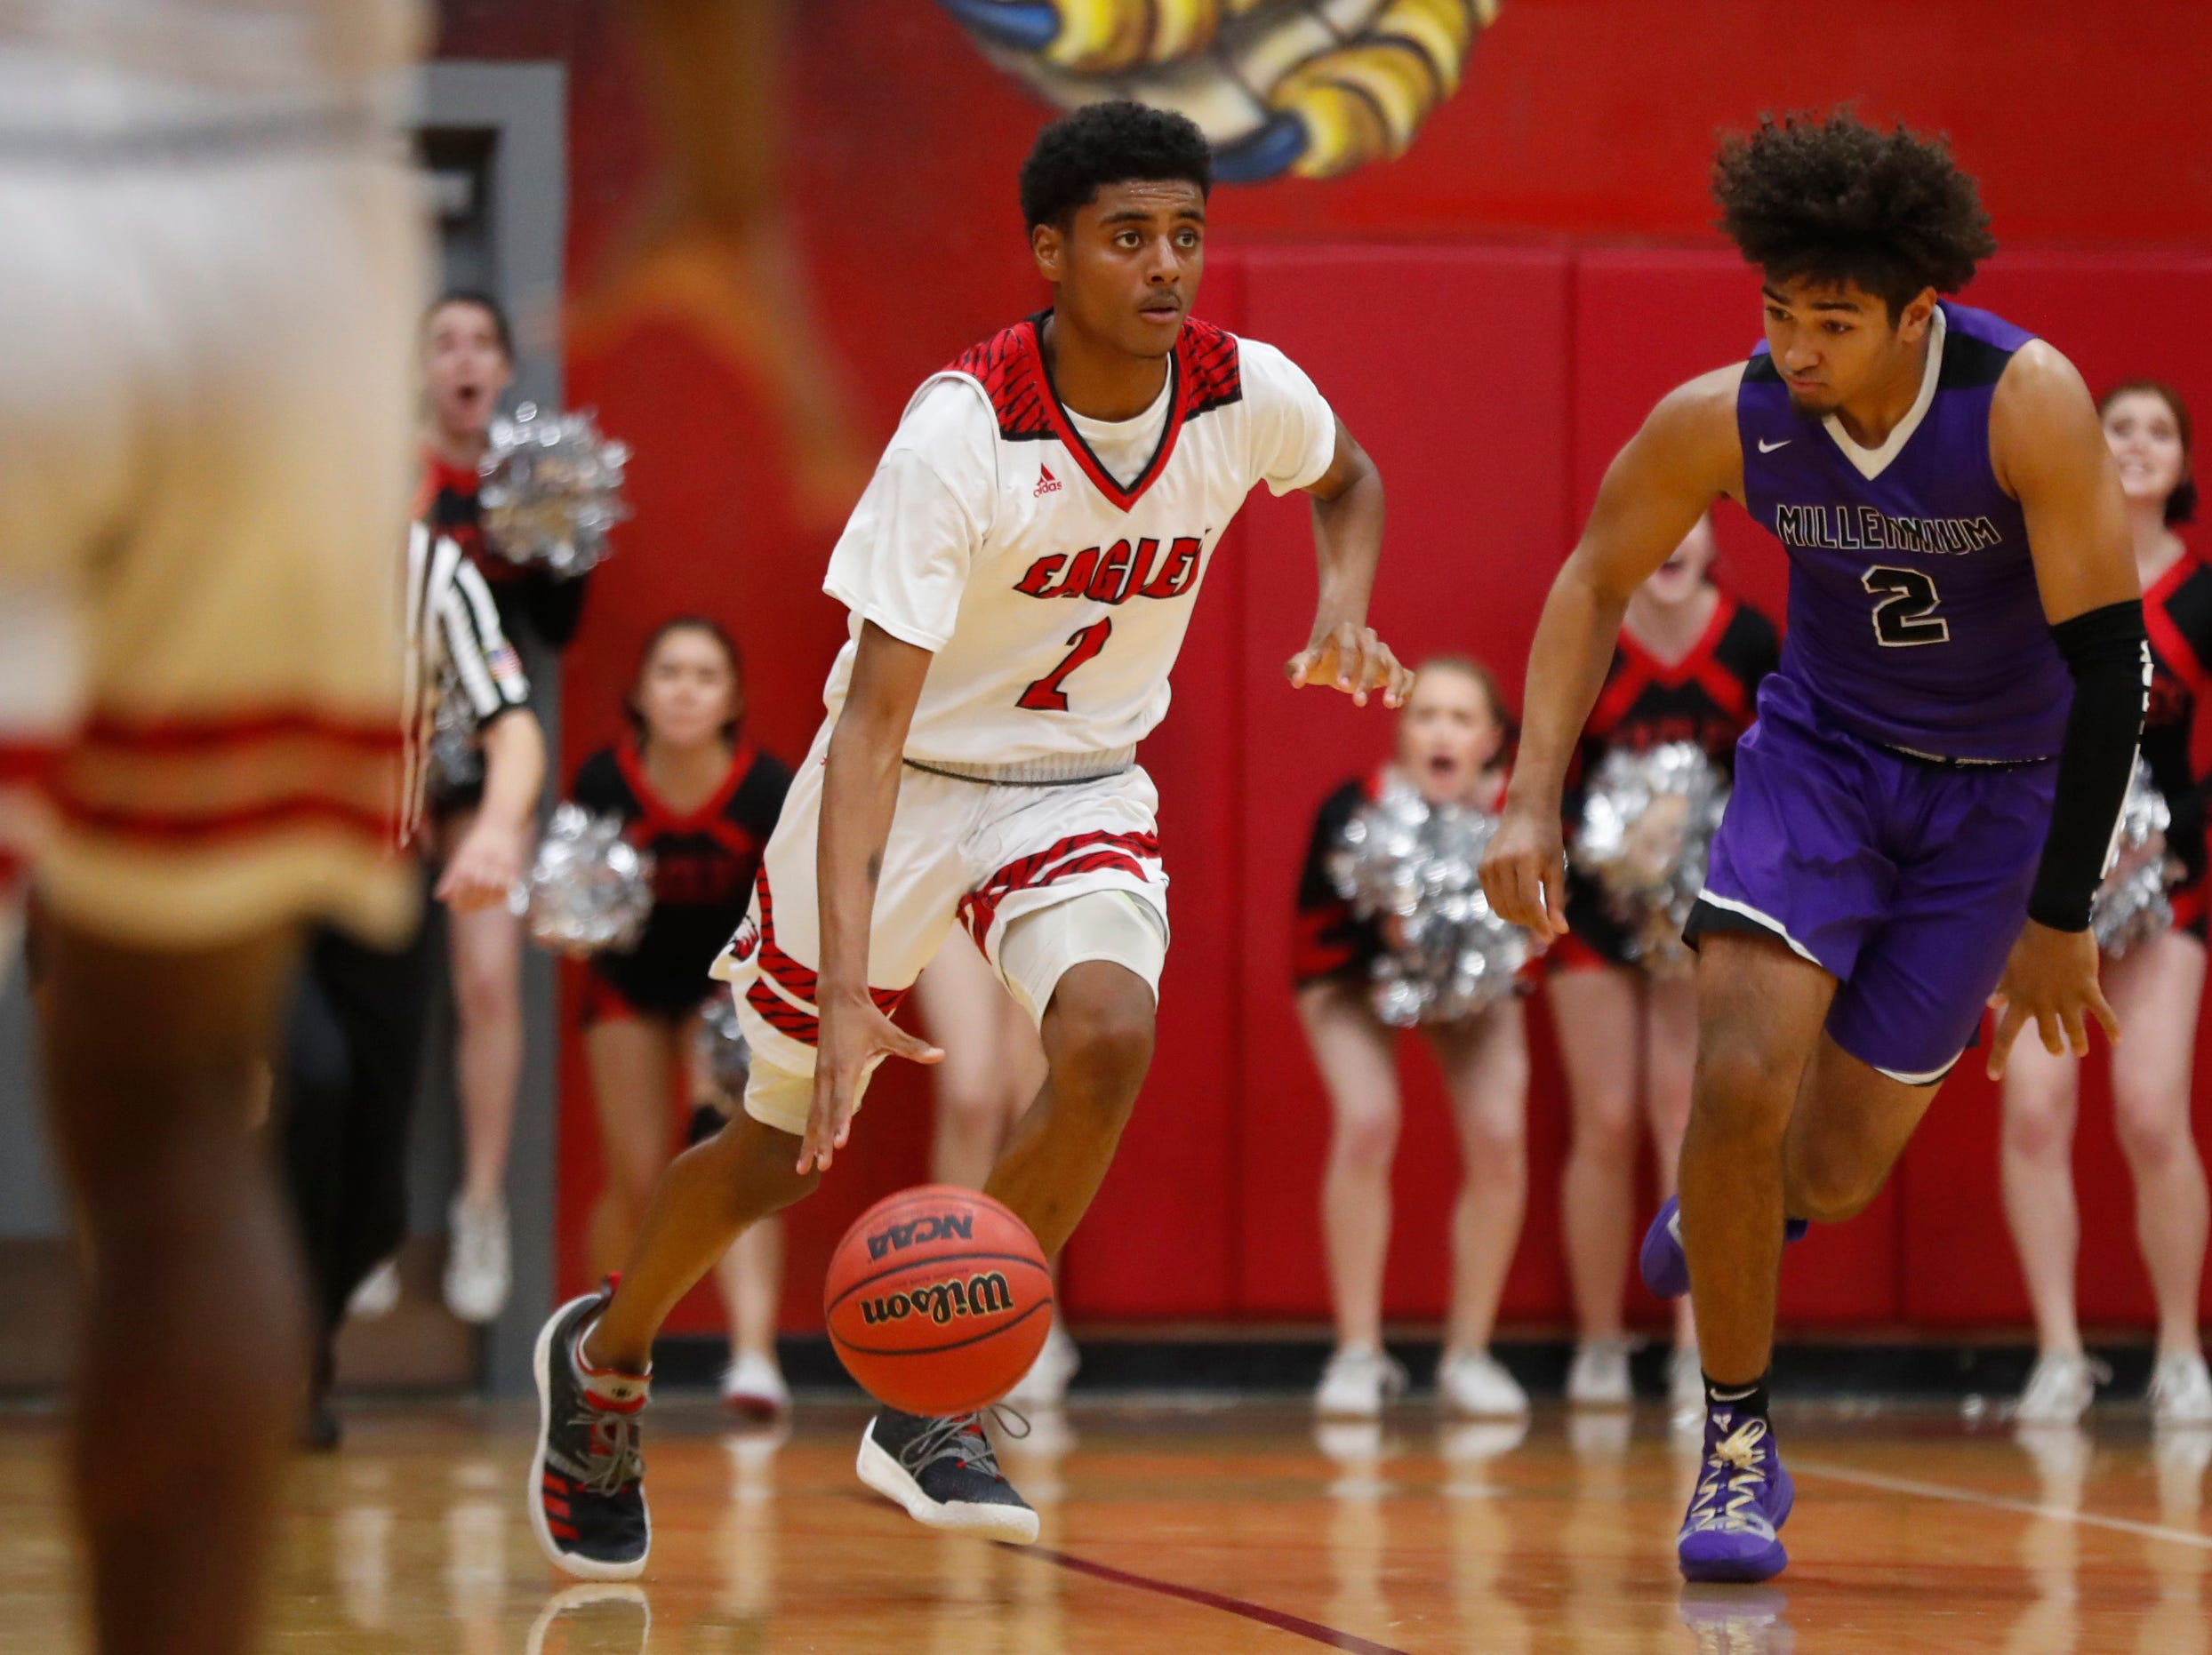 Ironwood's Dominic Gonzalez (2) dribbles against Millennium's Jalan Early (2) during the second half of the 5A state quarterfinal game against Millennium at Ironwood High School in Glendale, Ariz. on February 15, 2019.